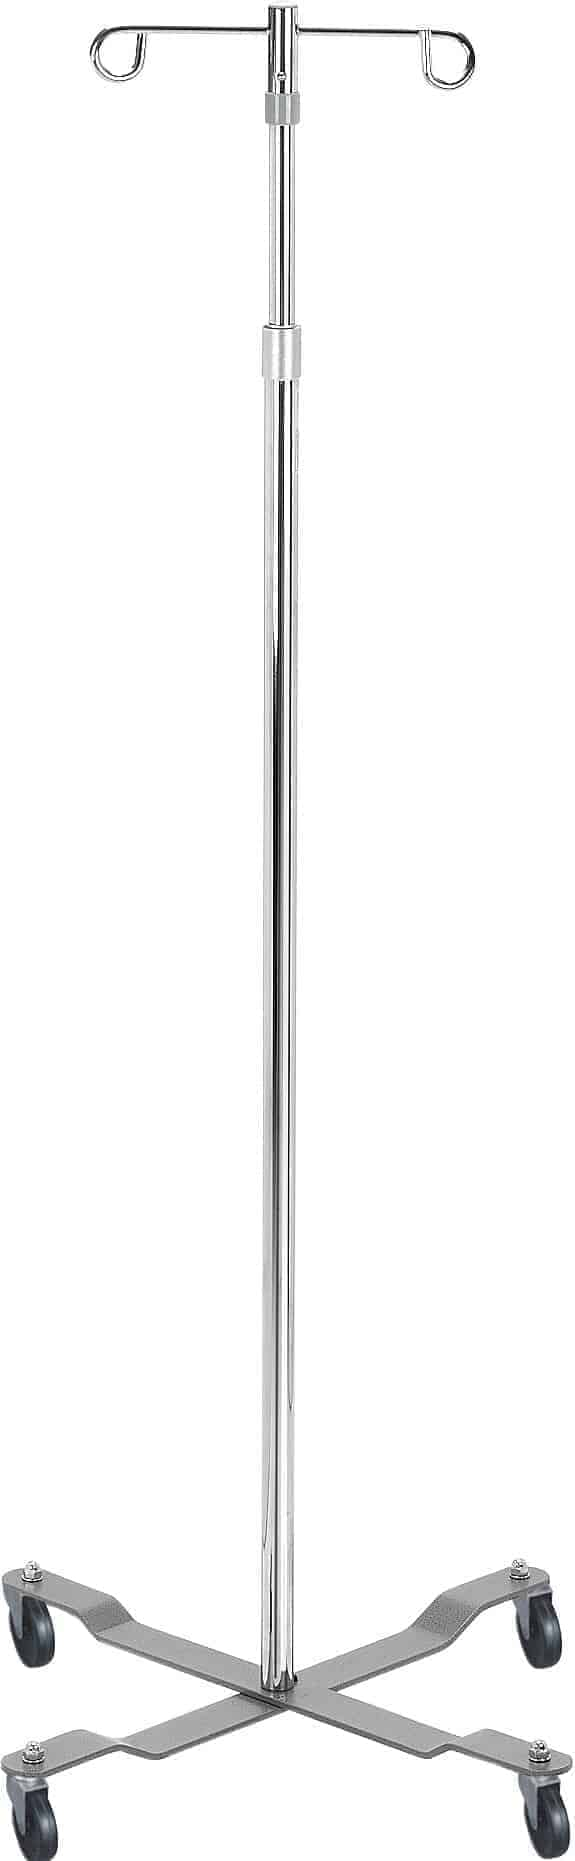 IV Pole, Silver Vein Finish